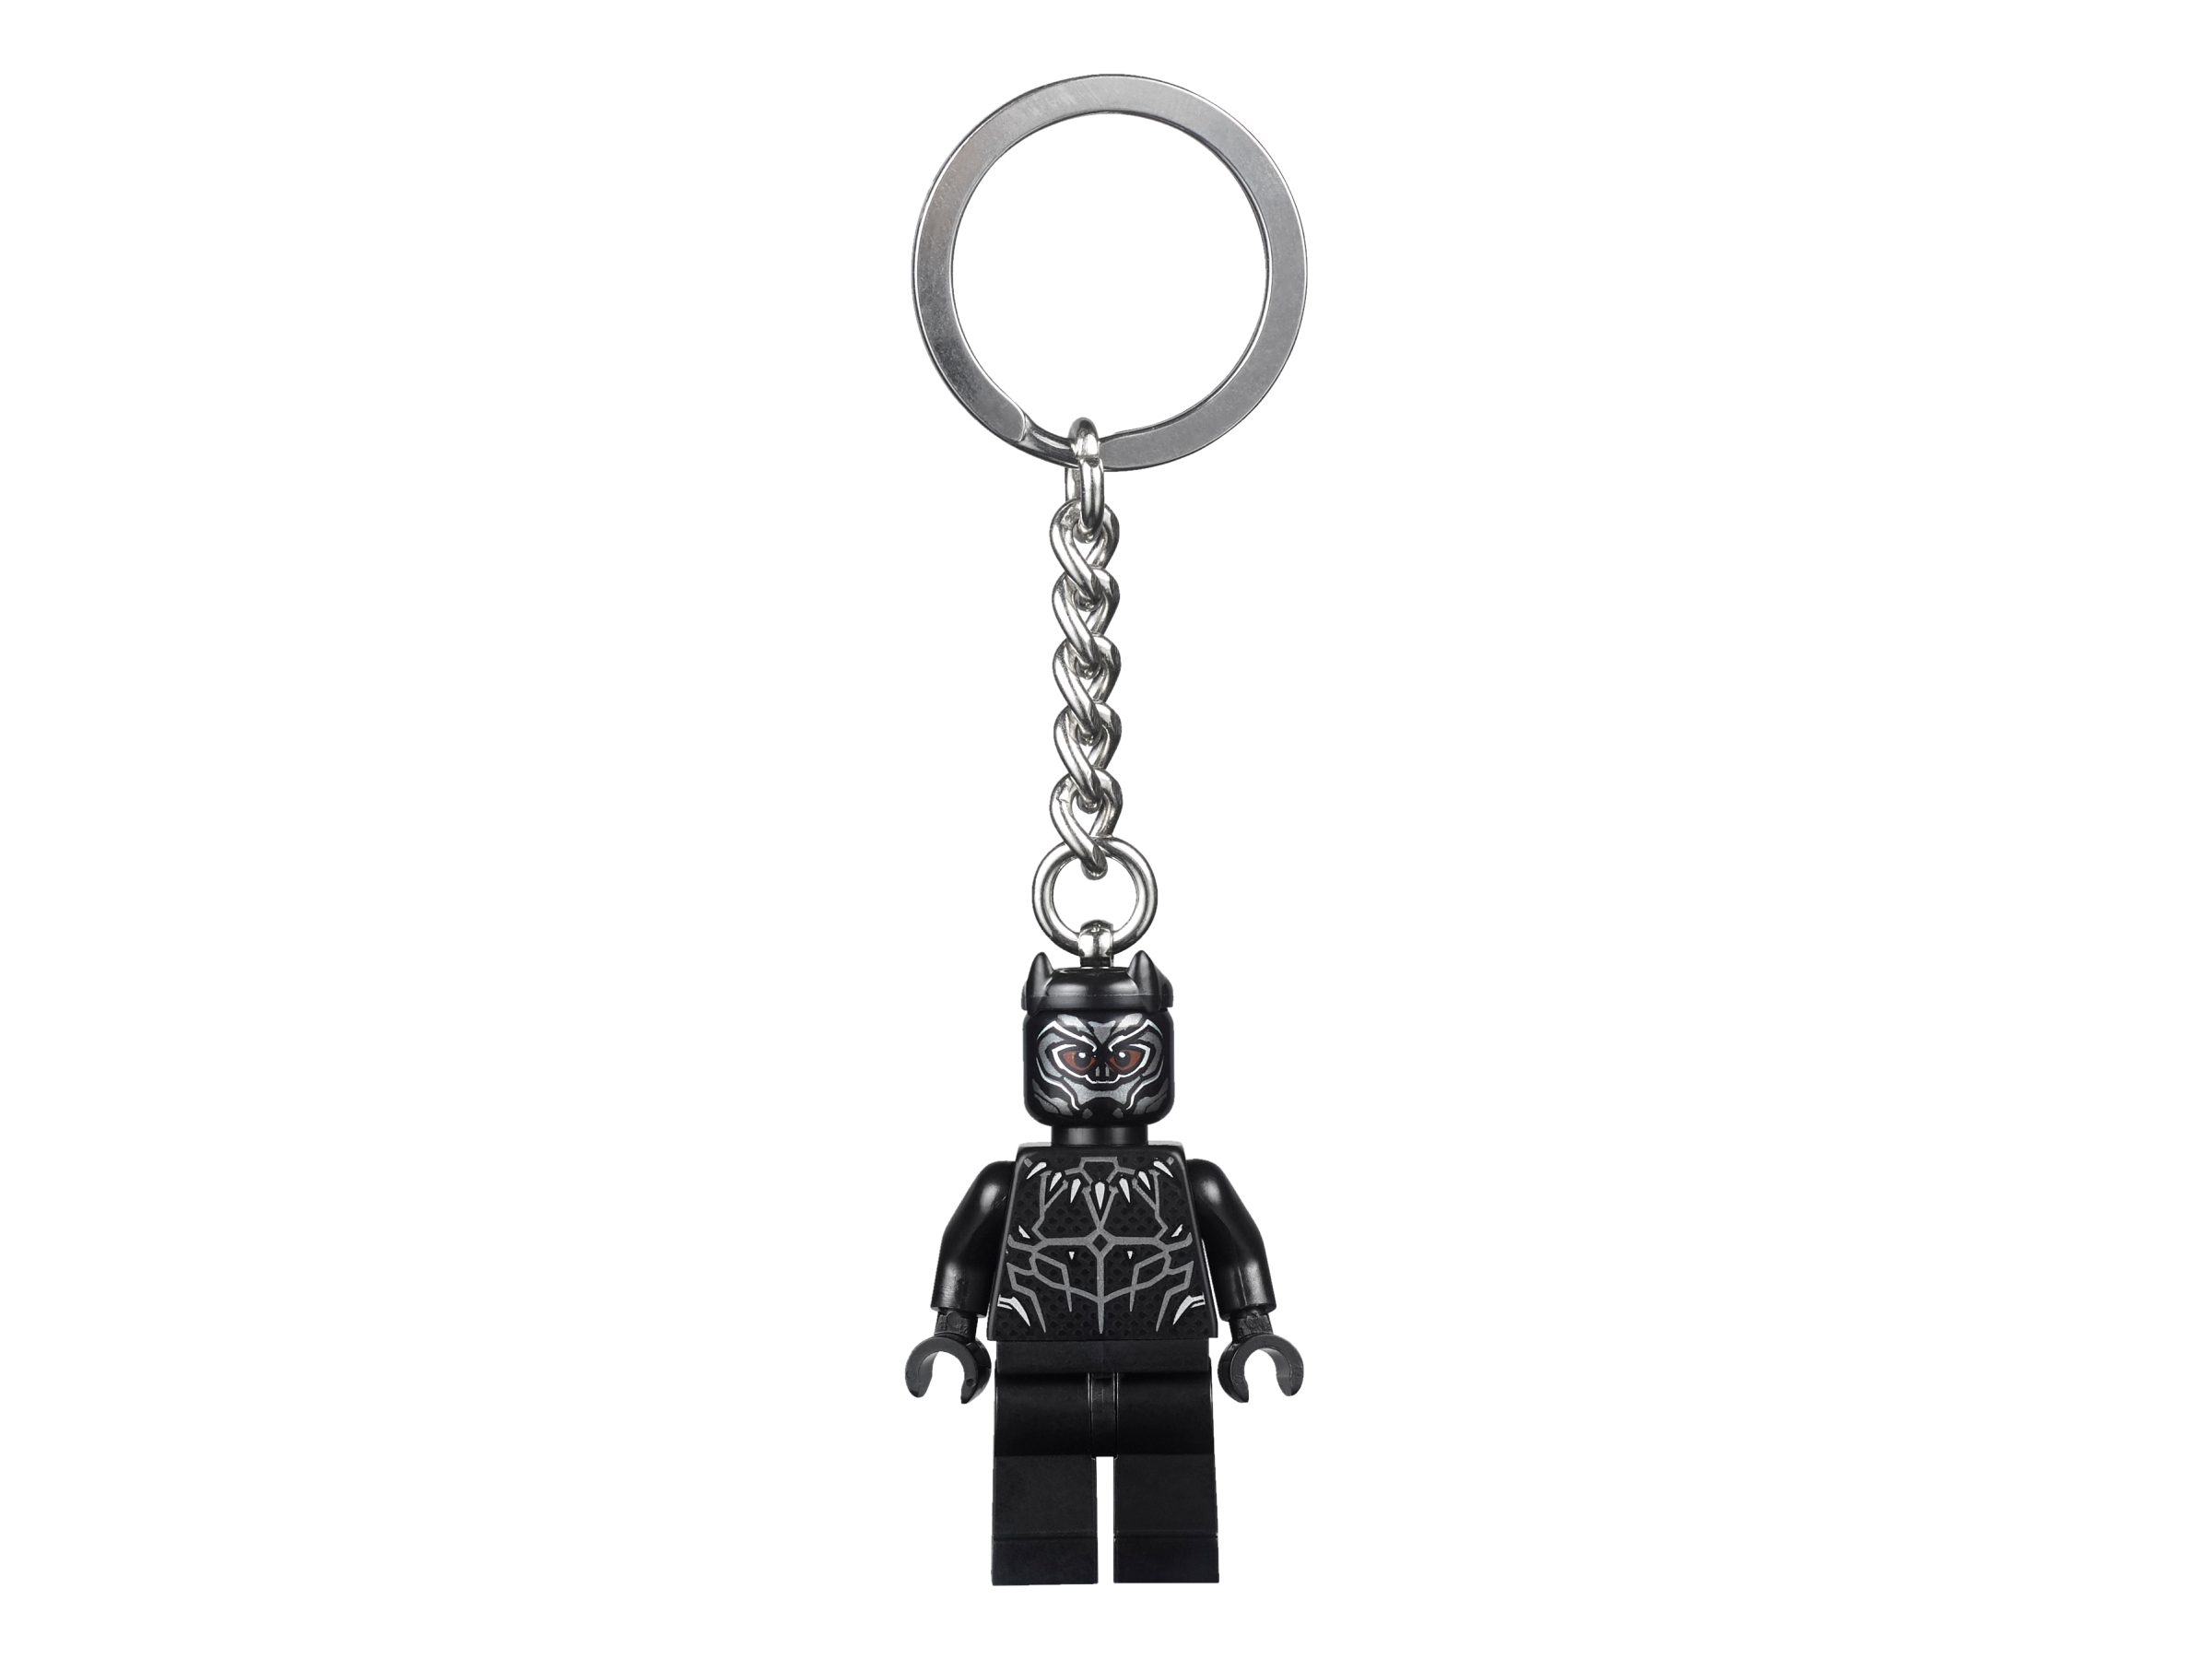 LEGO MARVEL BLACK PANTHER KEYCHAIN 853771 BRAND NEW ORIGINAL 2018 SUPER HEROES